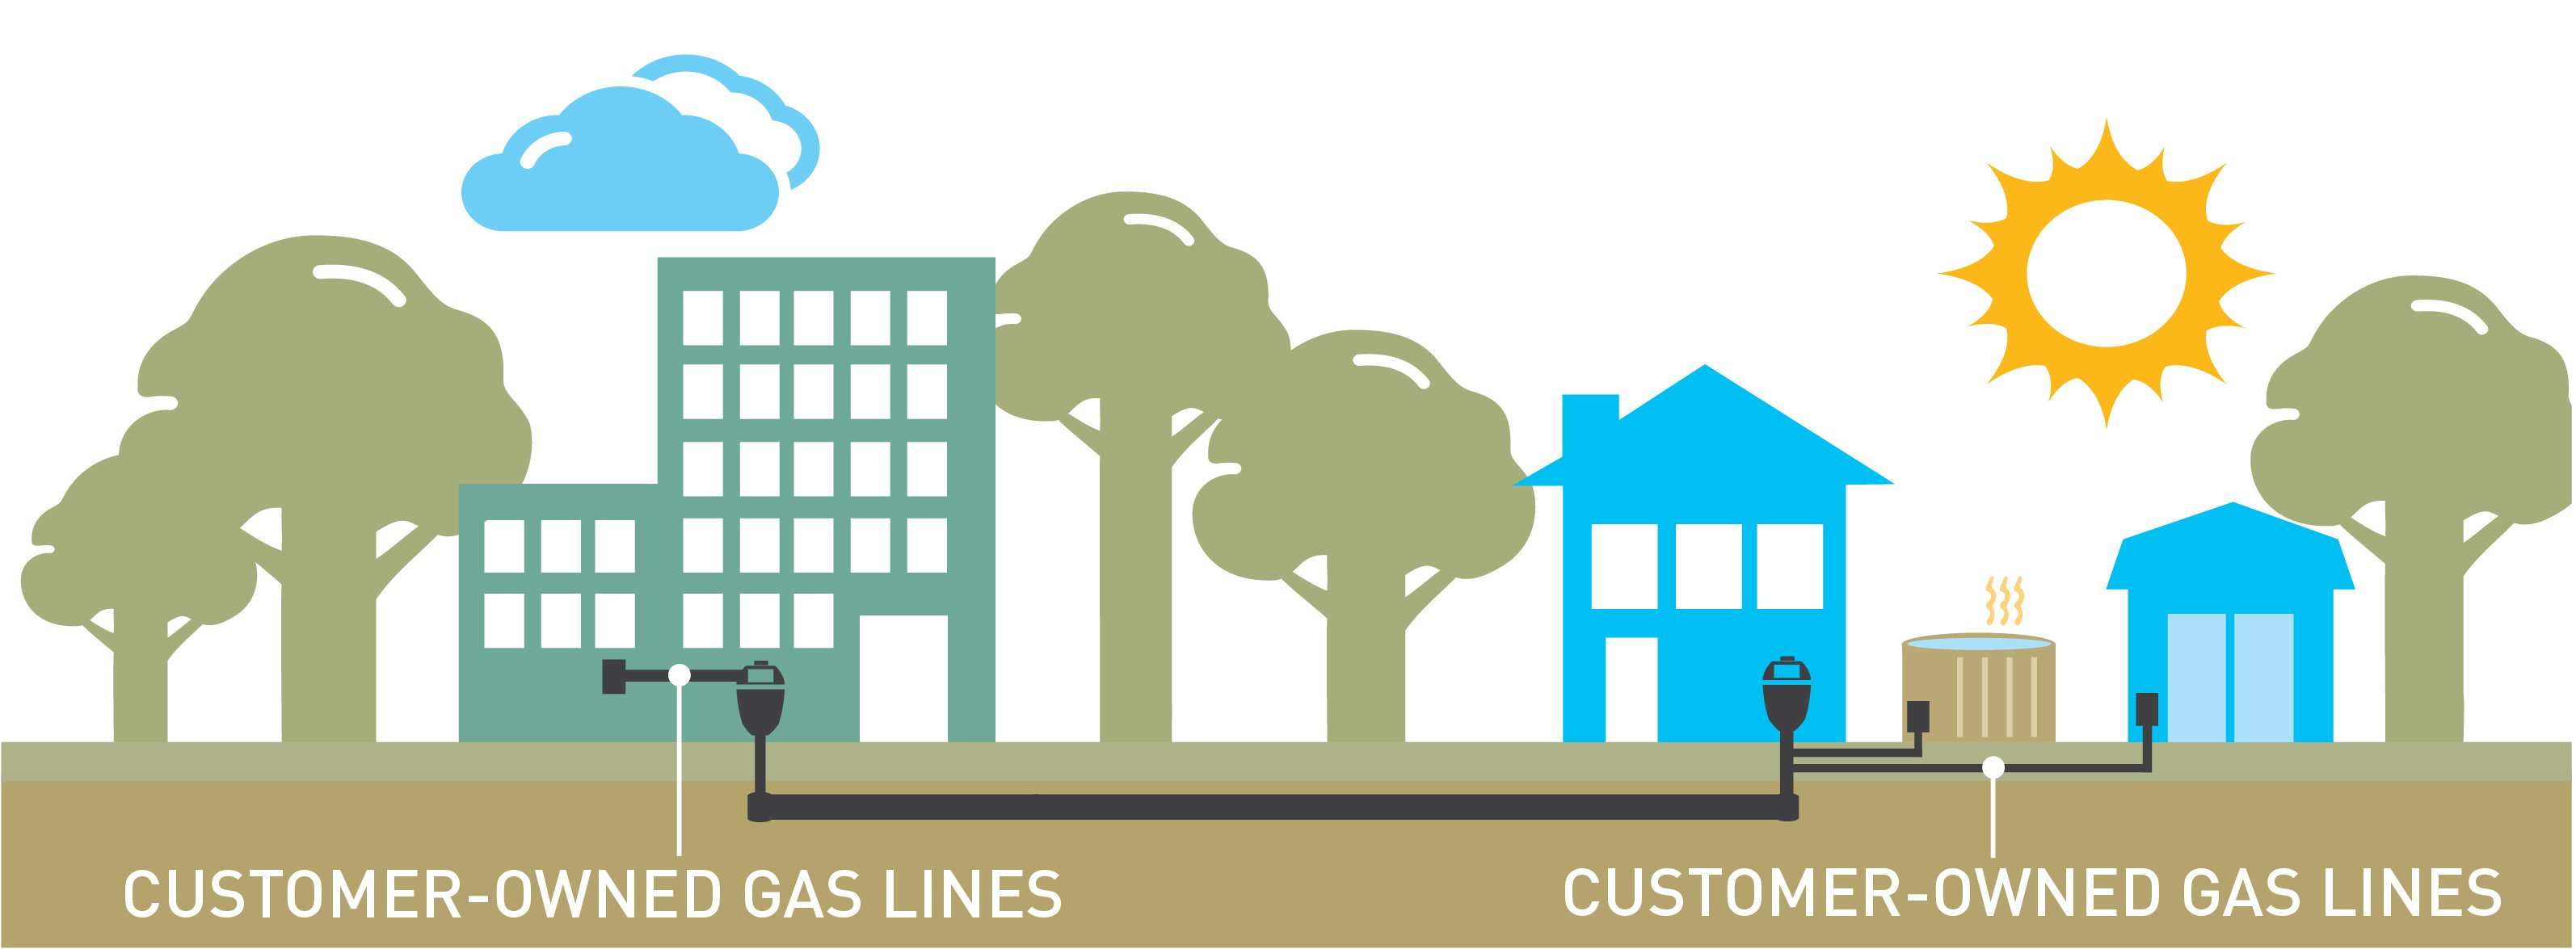 illustration of customer owned gas lines